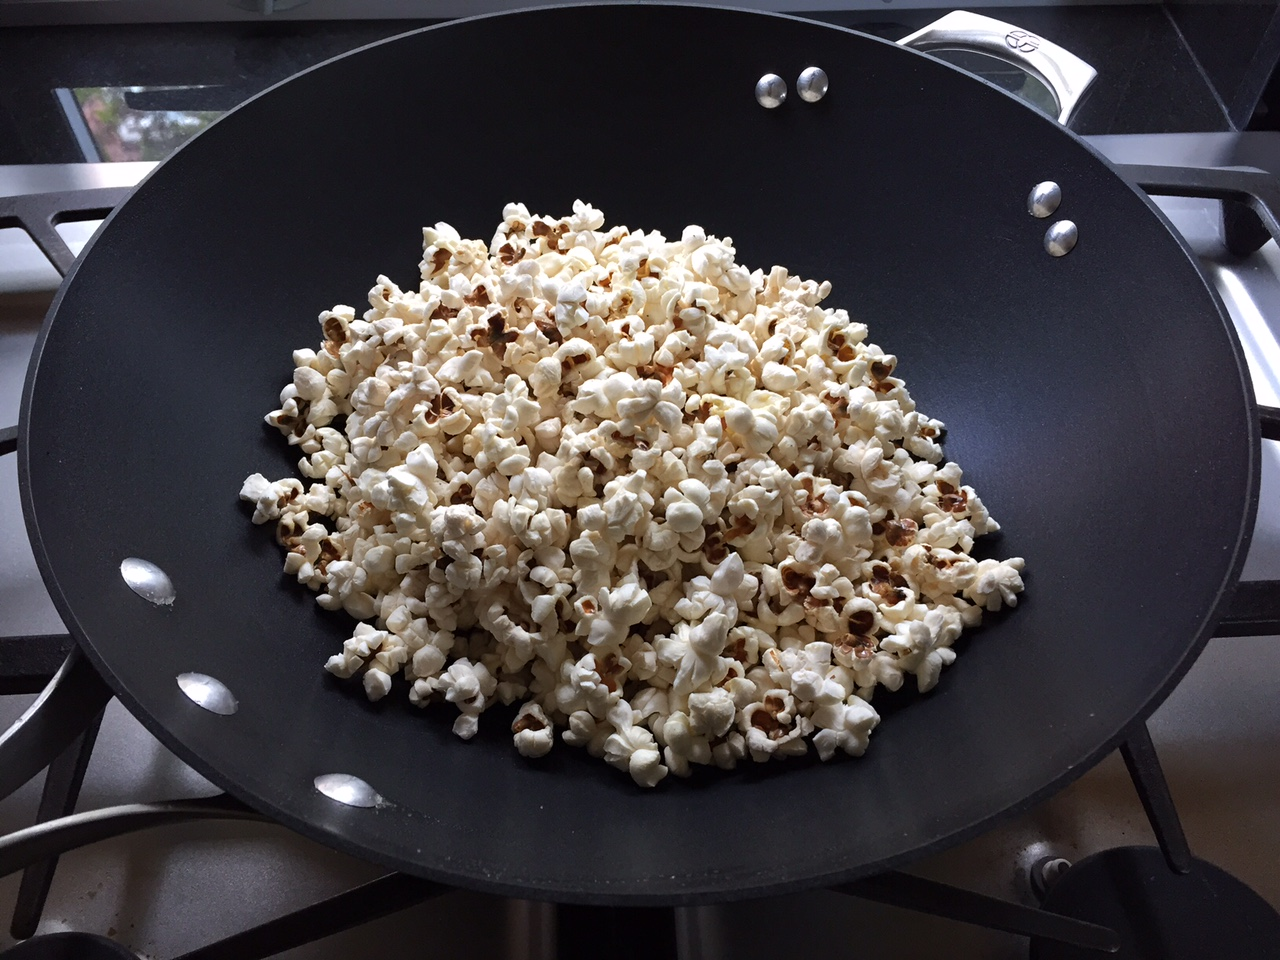 Popcorn made in a wok